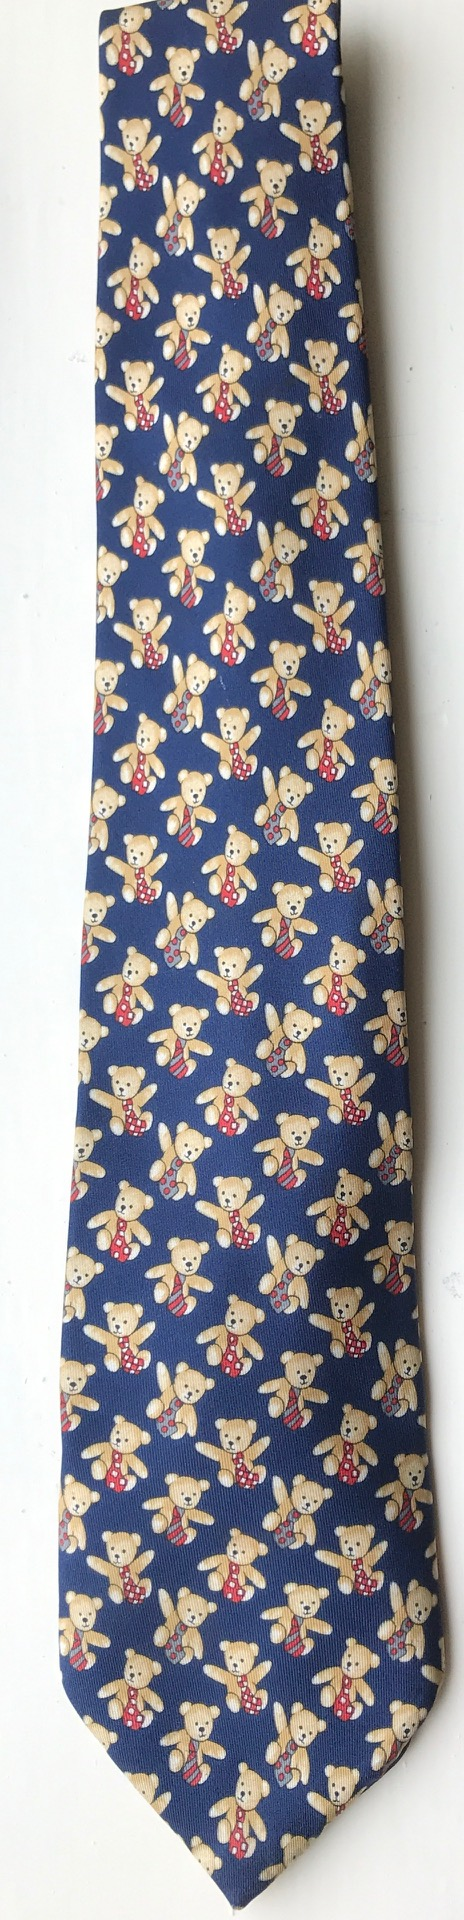 "Ties: The now Official ""Mindfully Bertie"" tie."